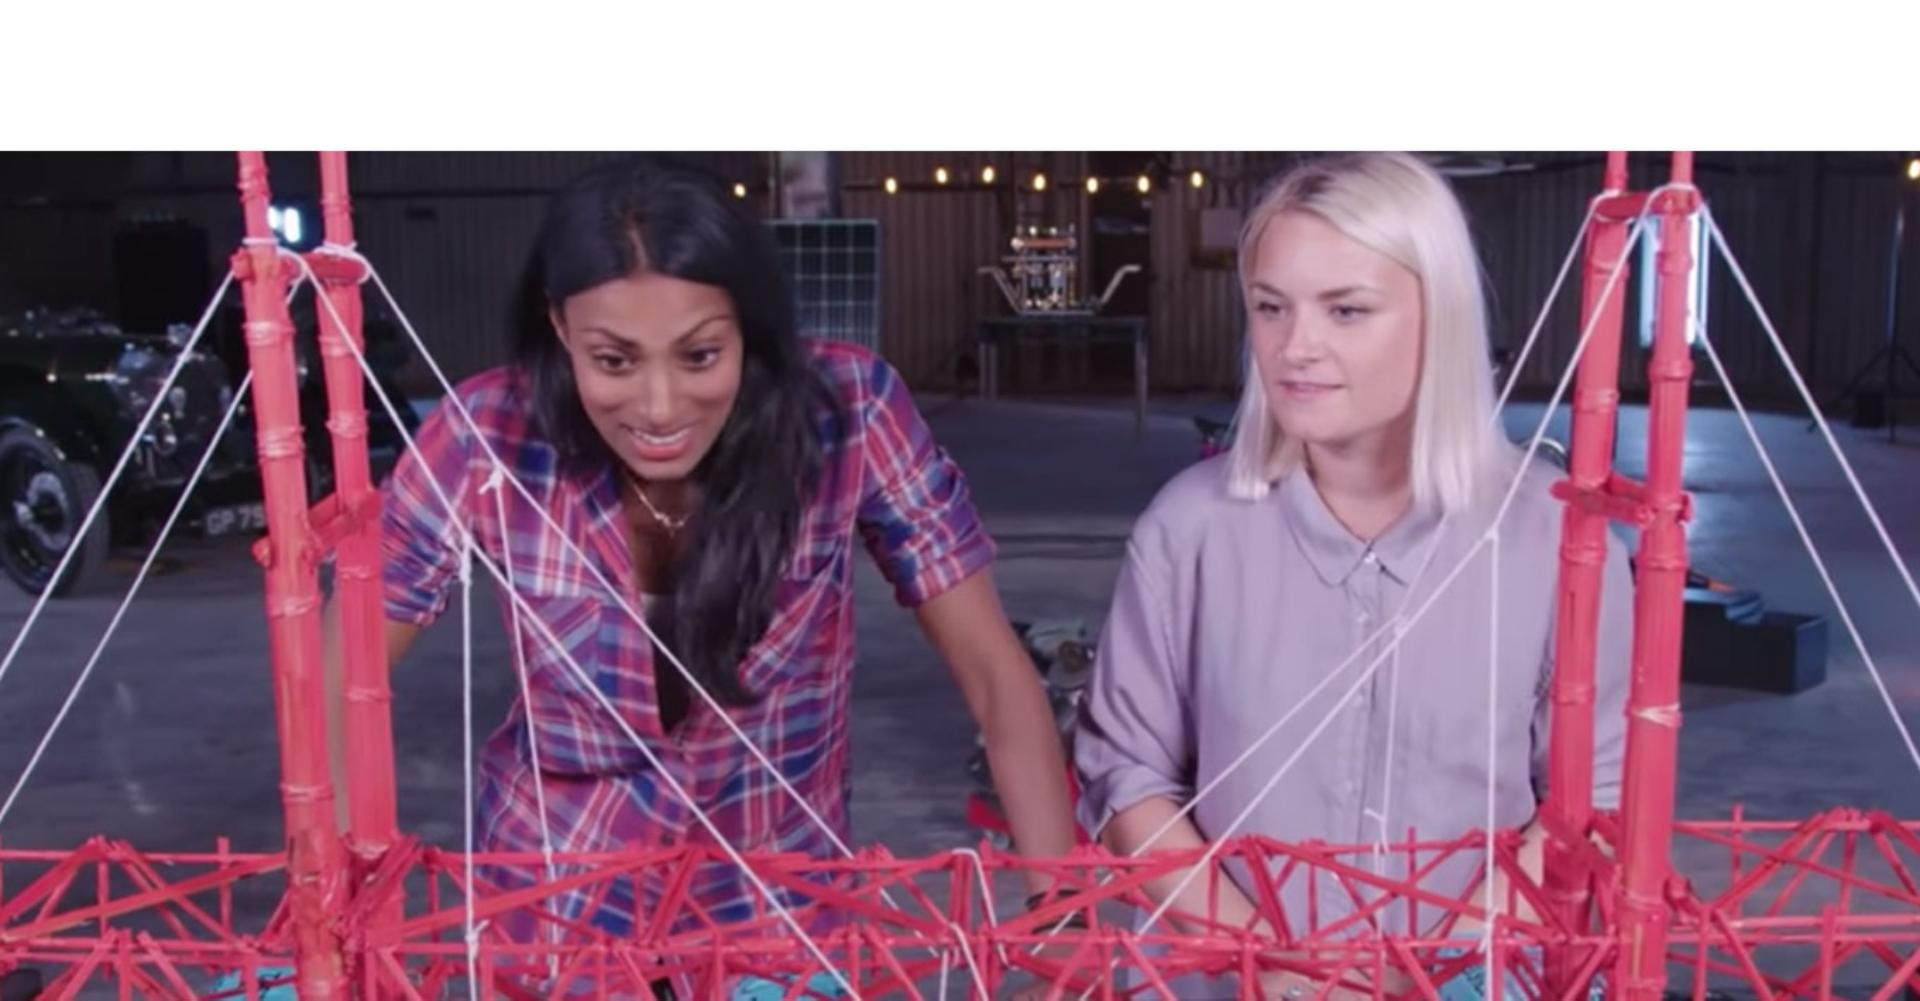 A Dyson engineer shows the spaghetti bridge challenge.